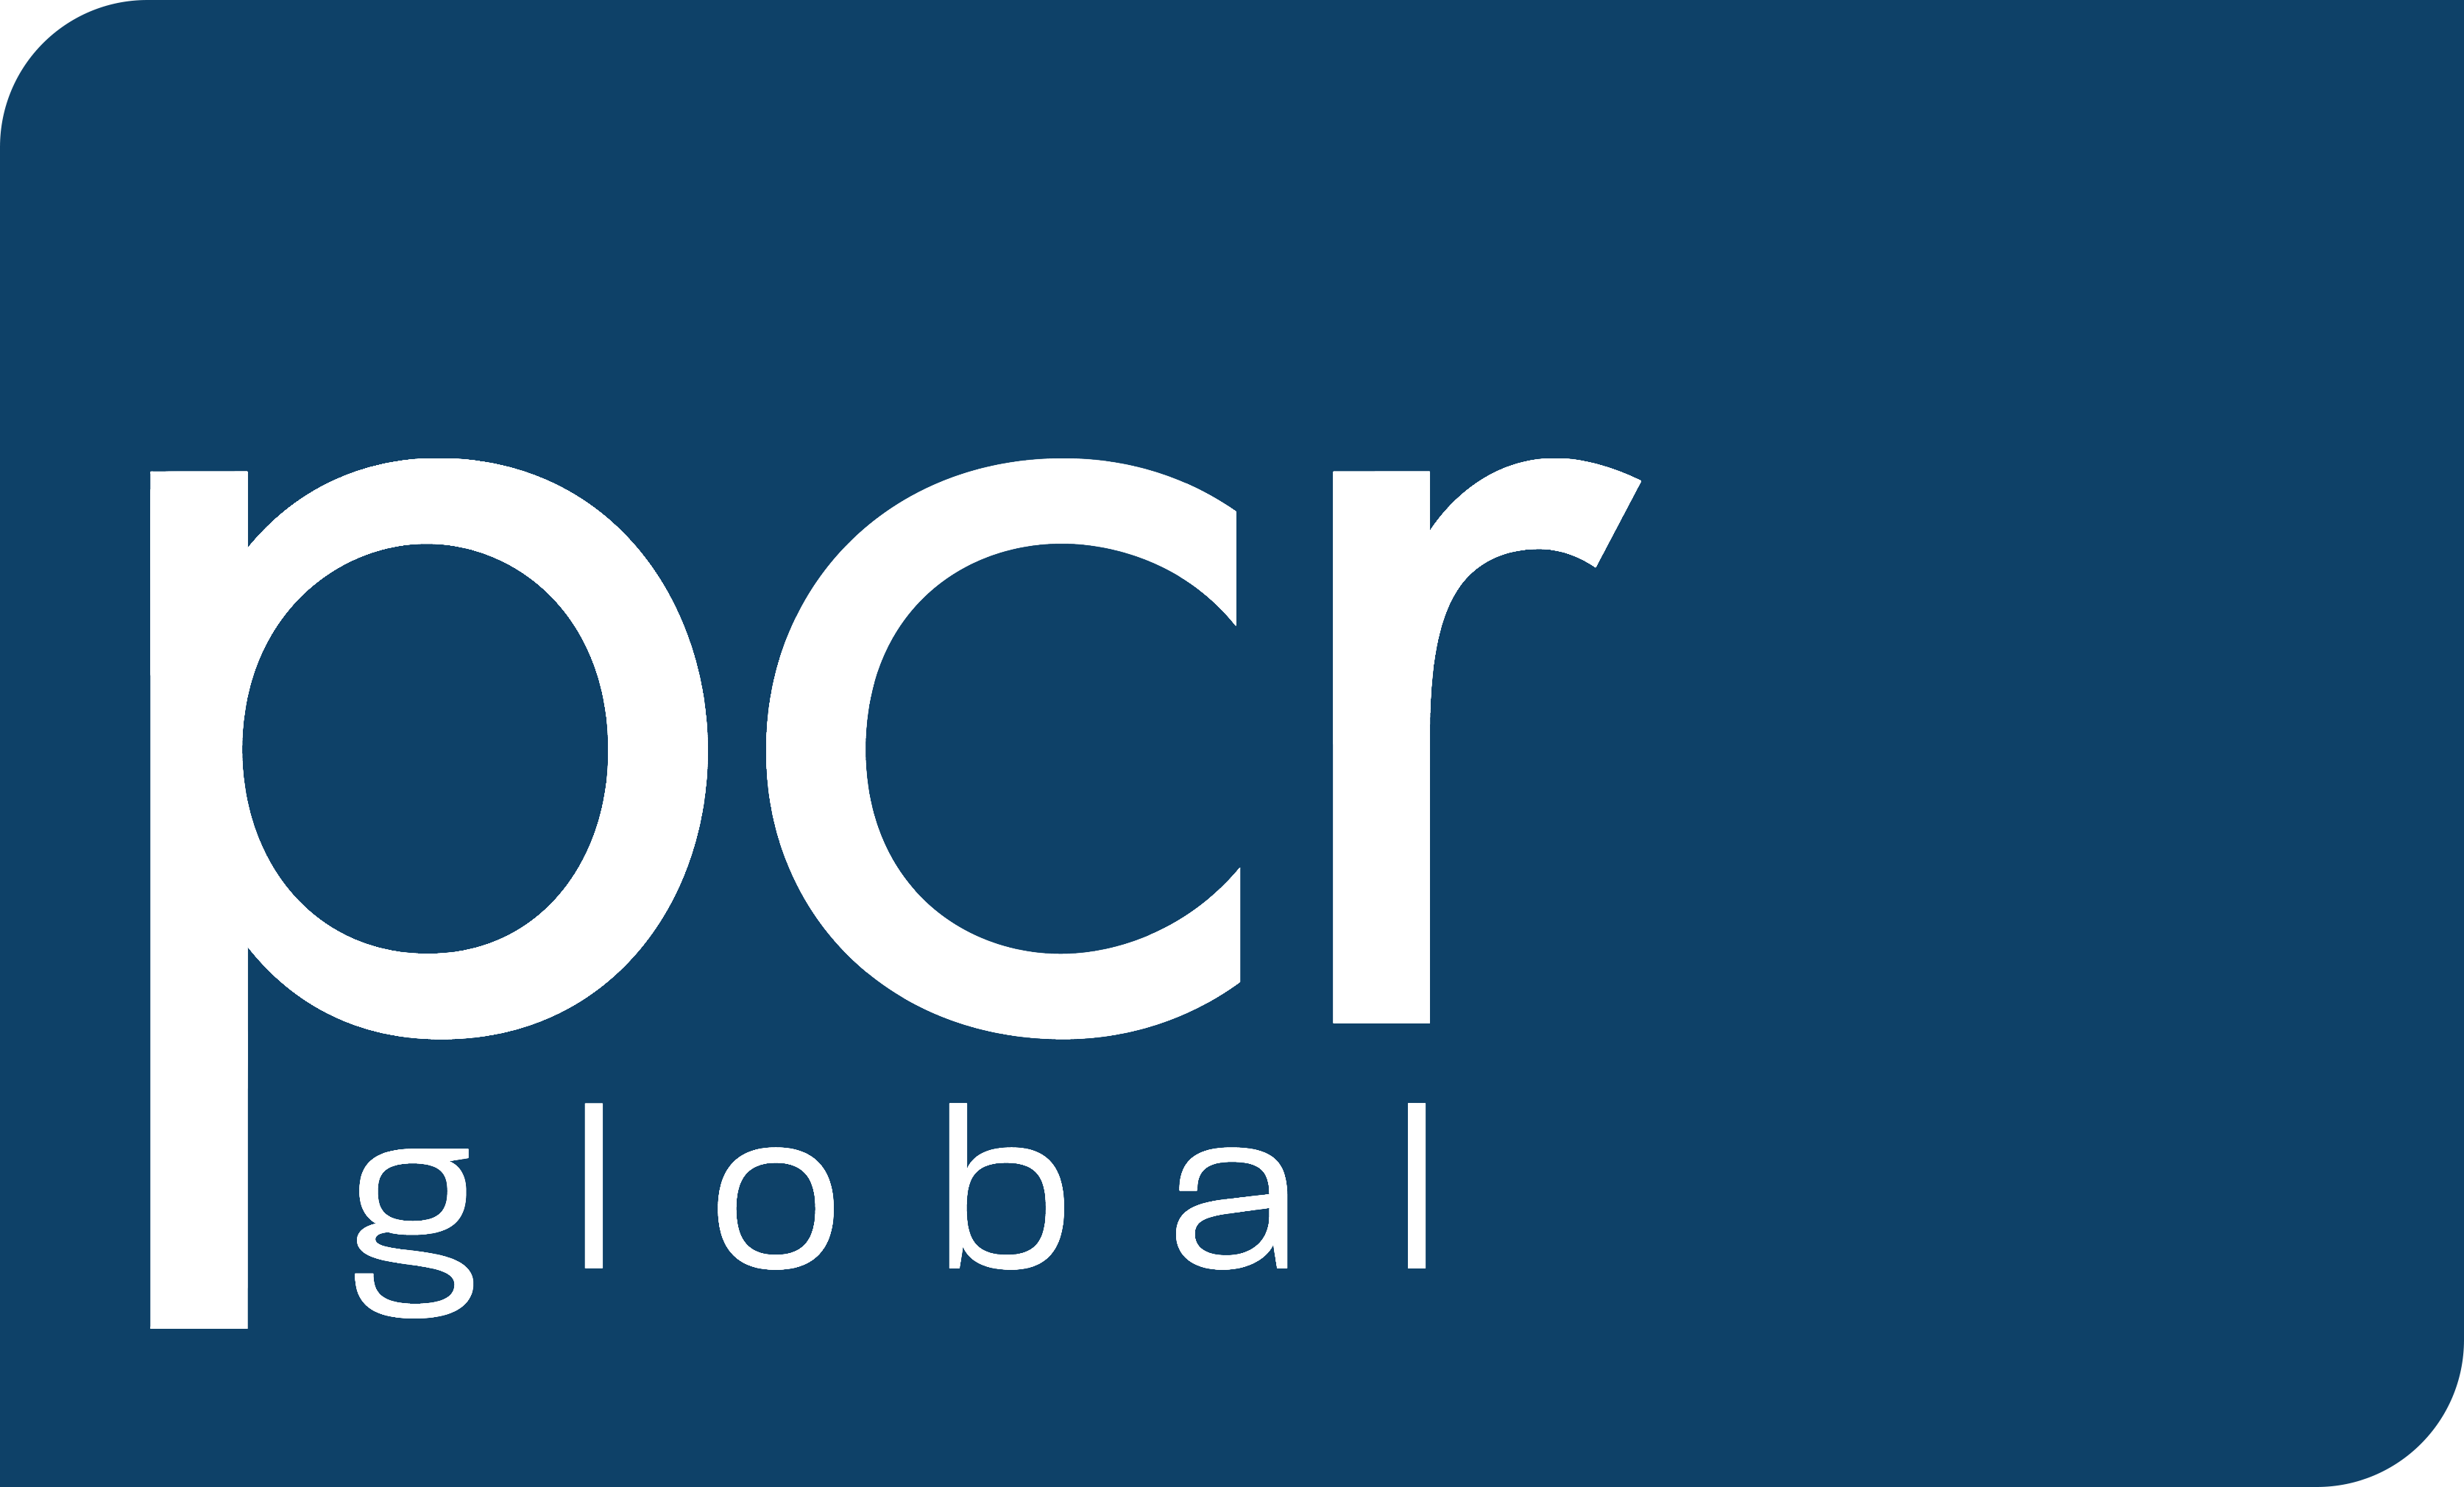 PCR Global Limited